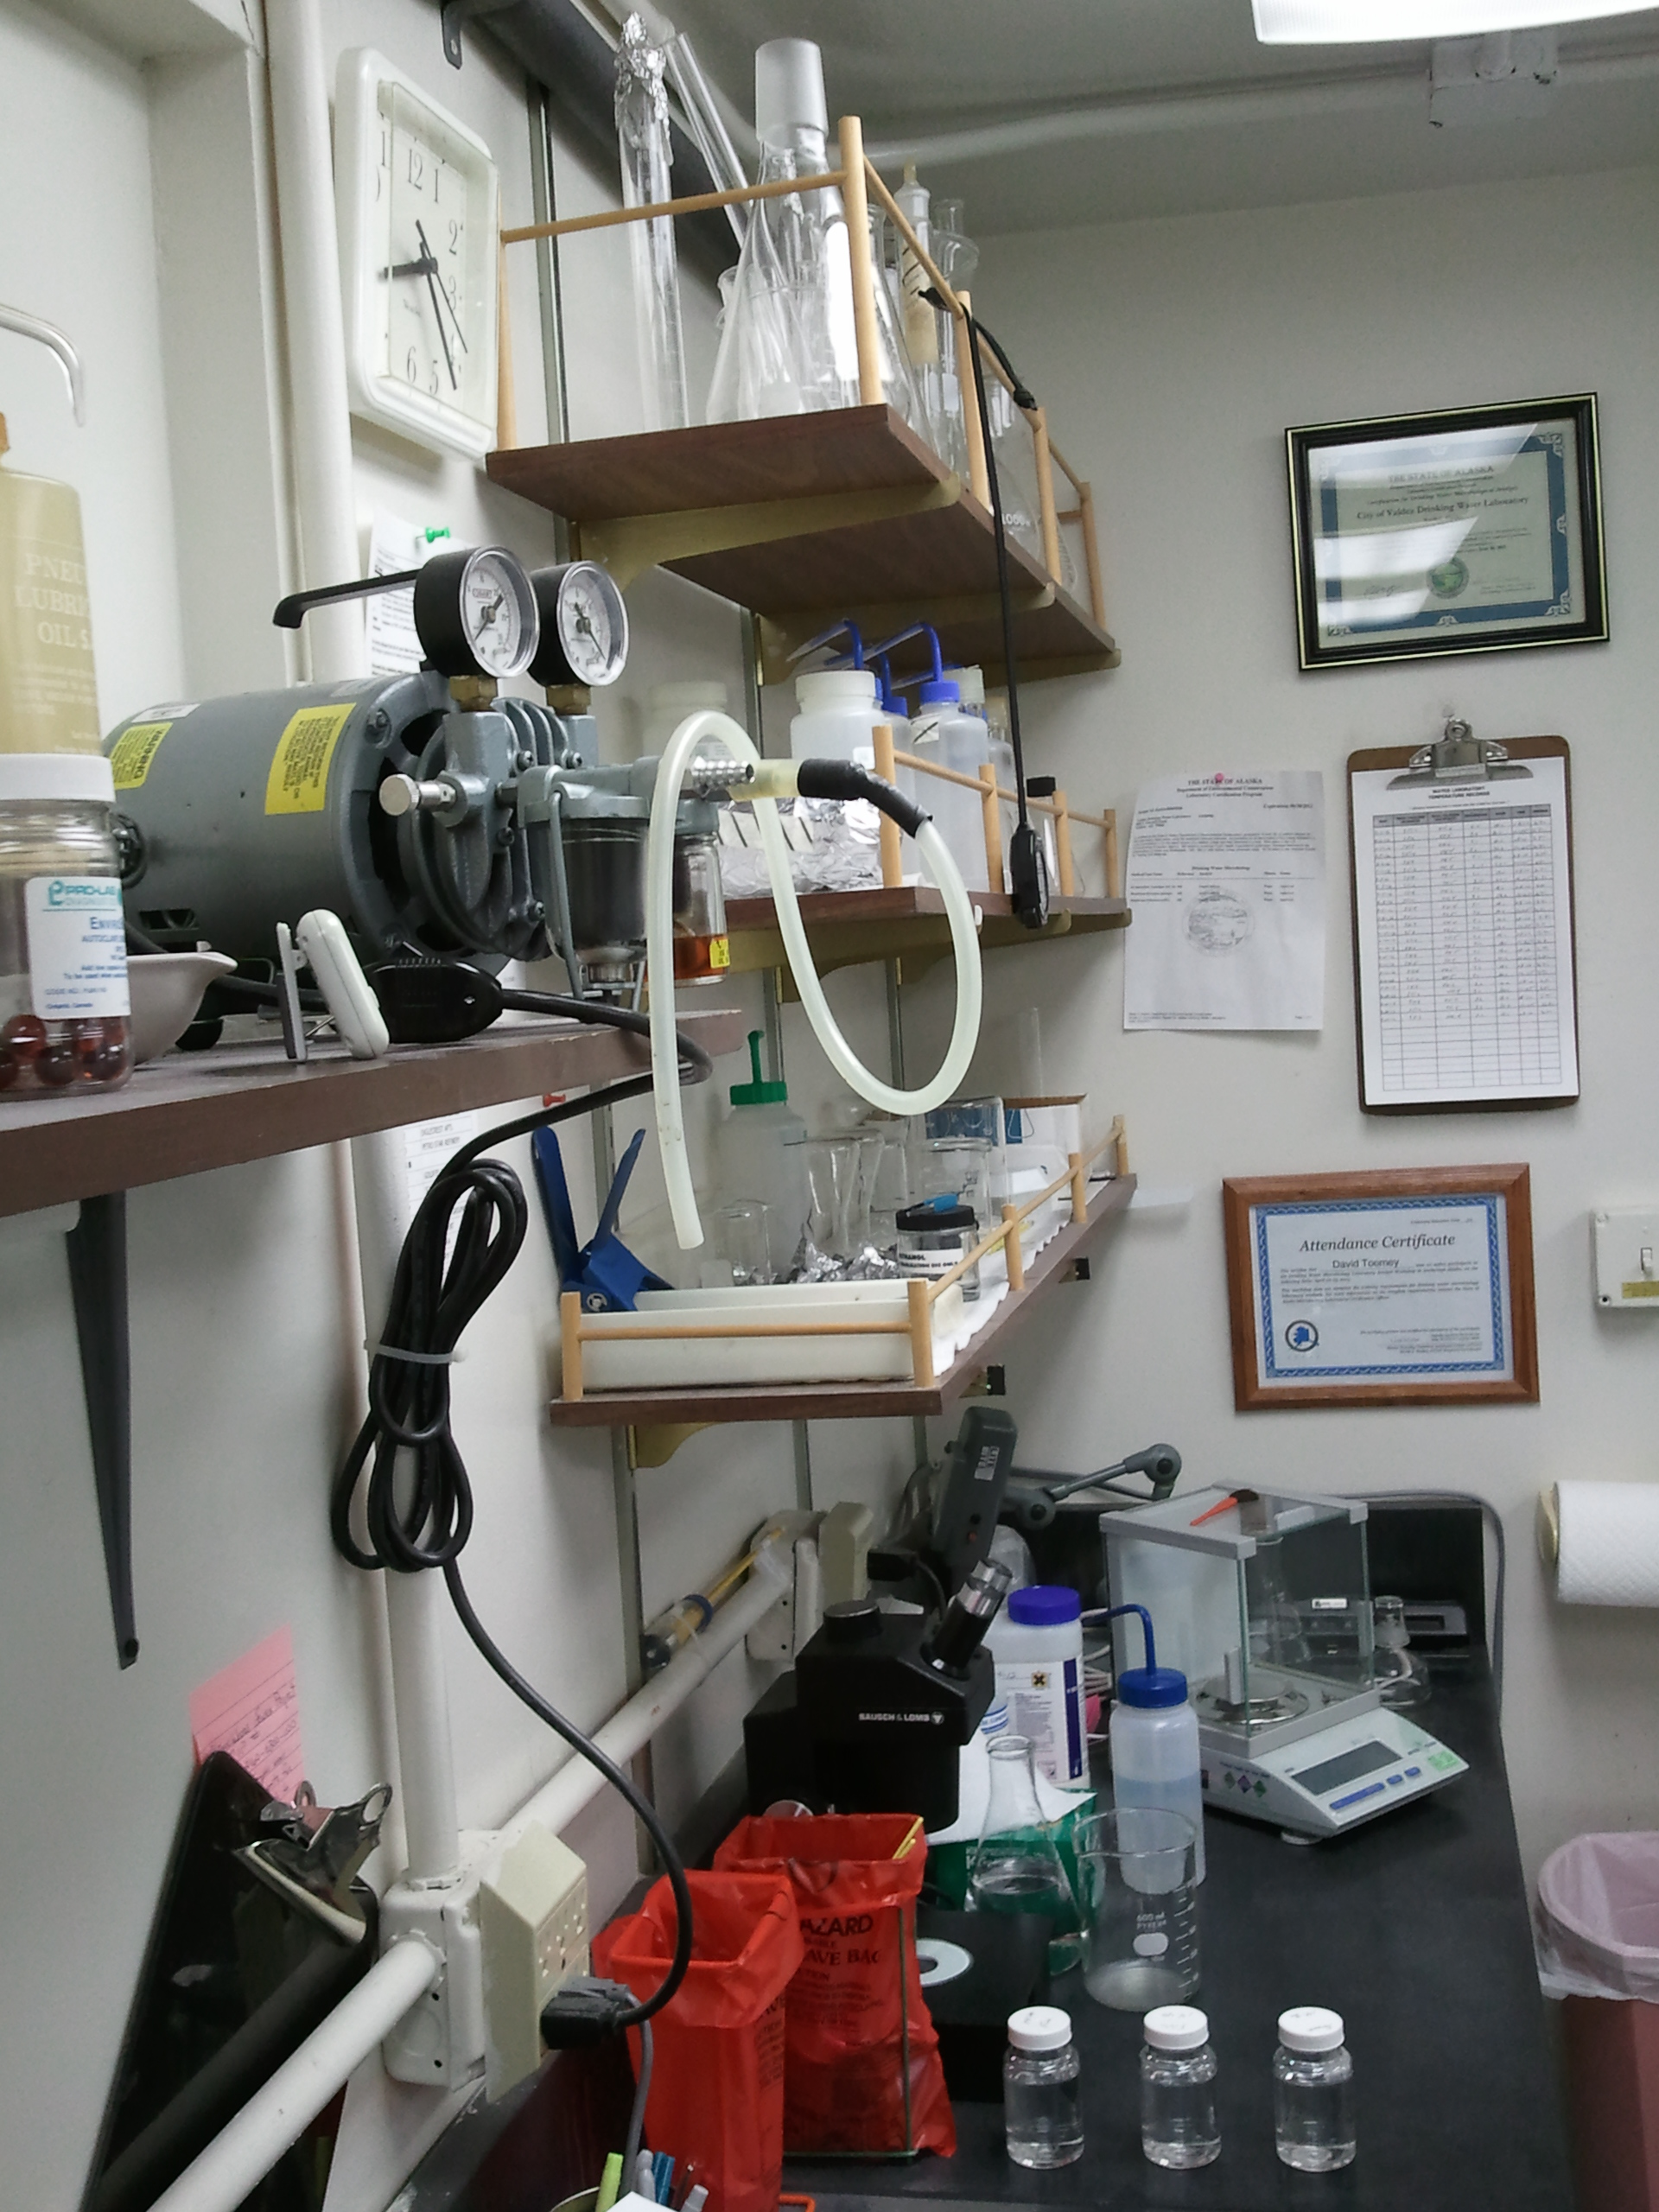 pic of a lab bench and shelves with associated equipment